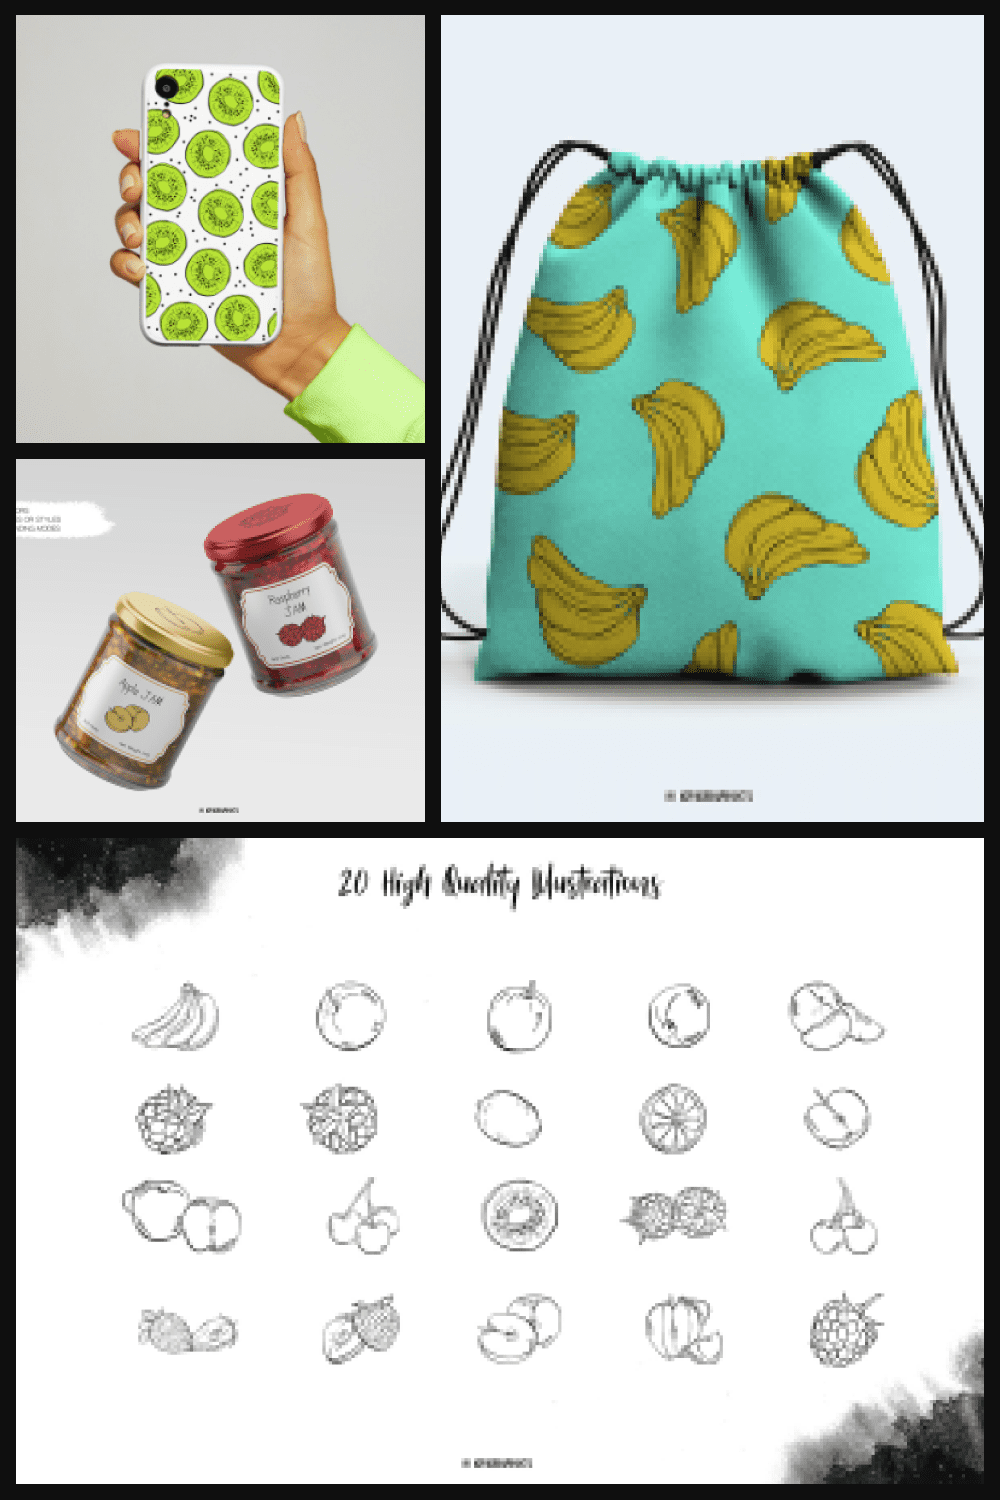 Hand Drawn Fruits Illustrations in Black and White - MasterBundles - Pinterest Collage Image.